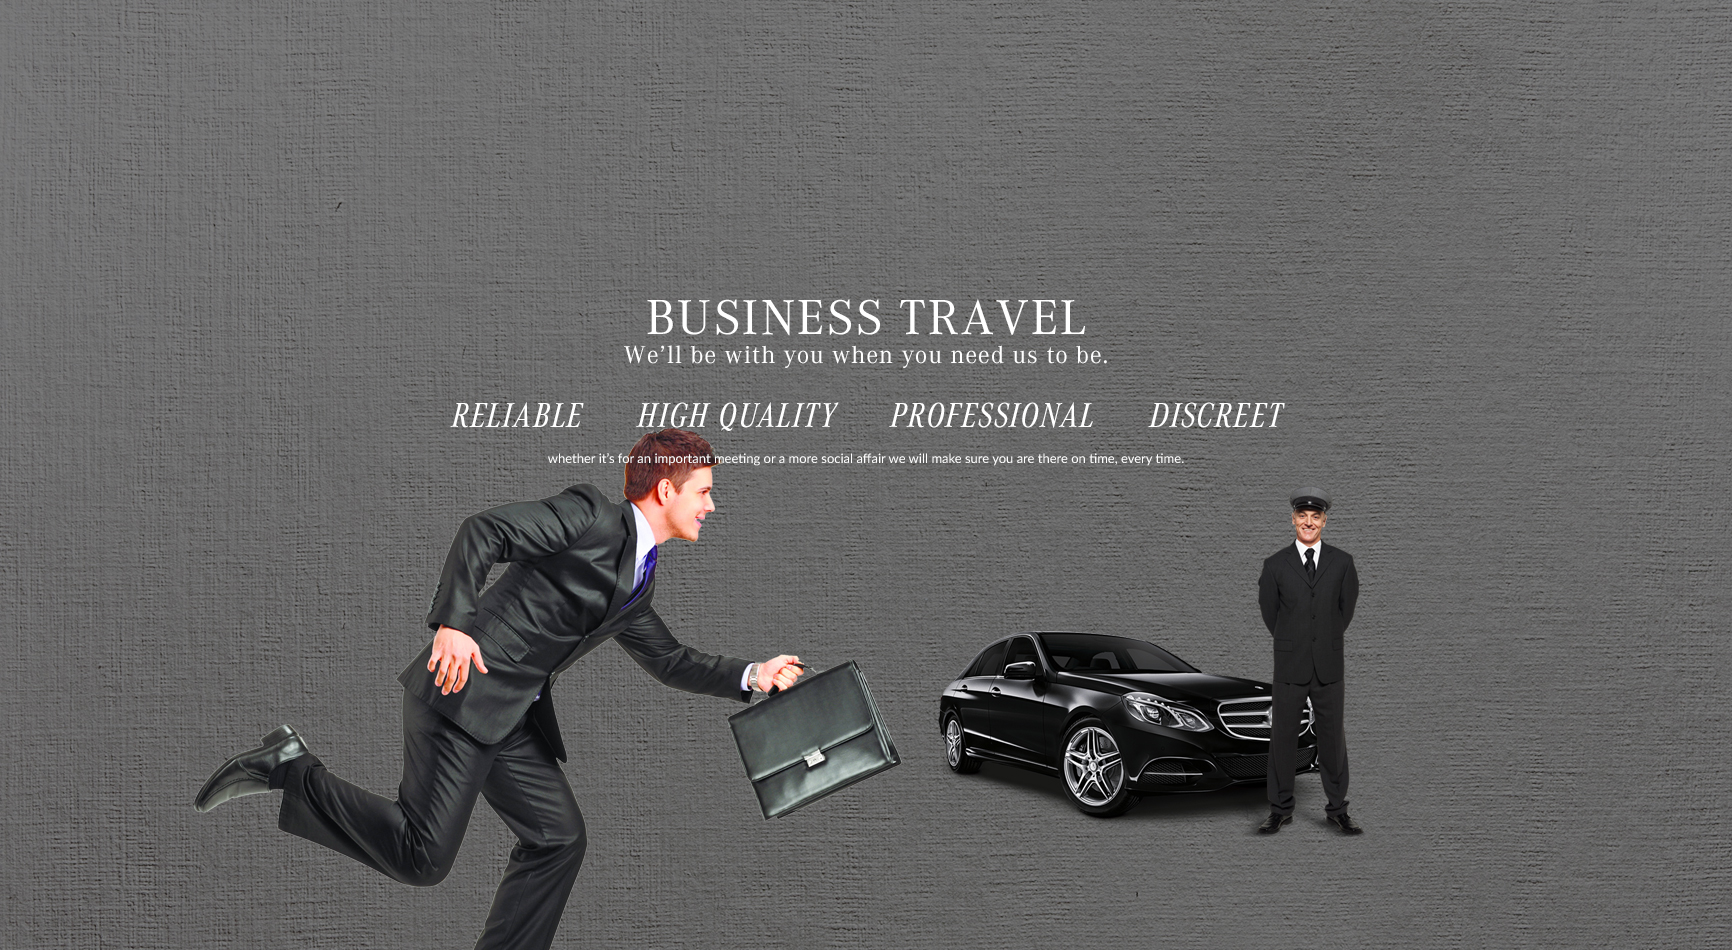 hm-business-banner-2